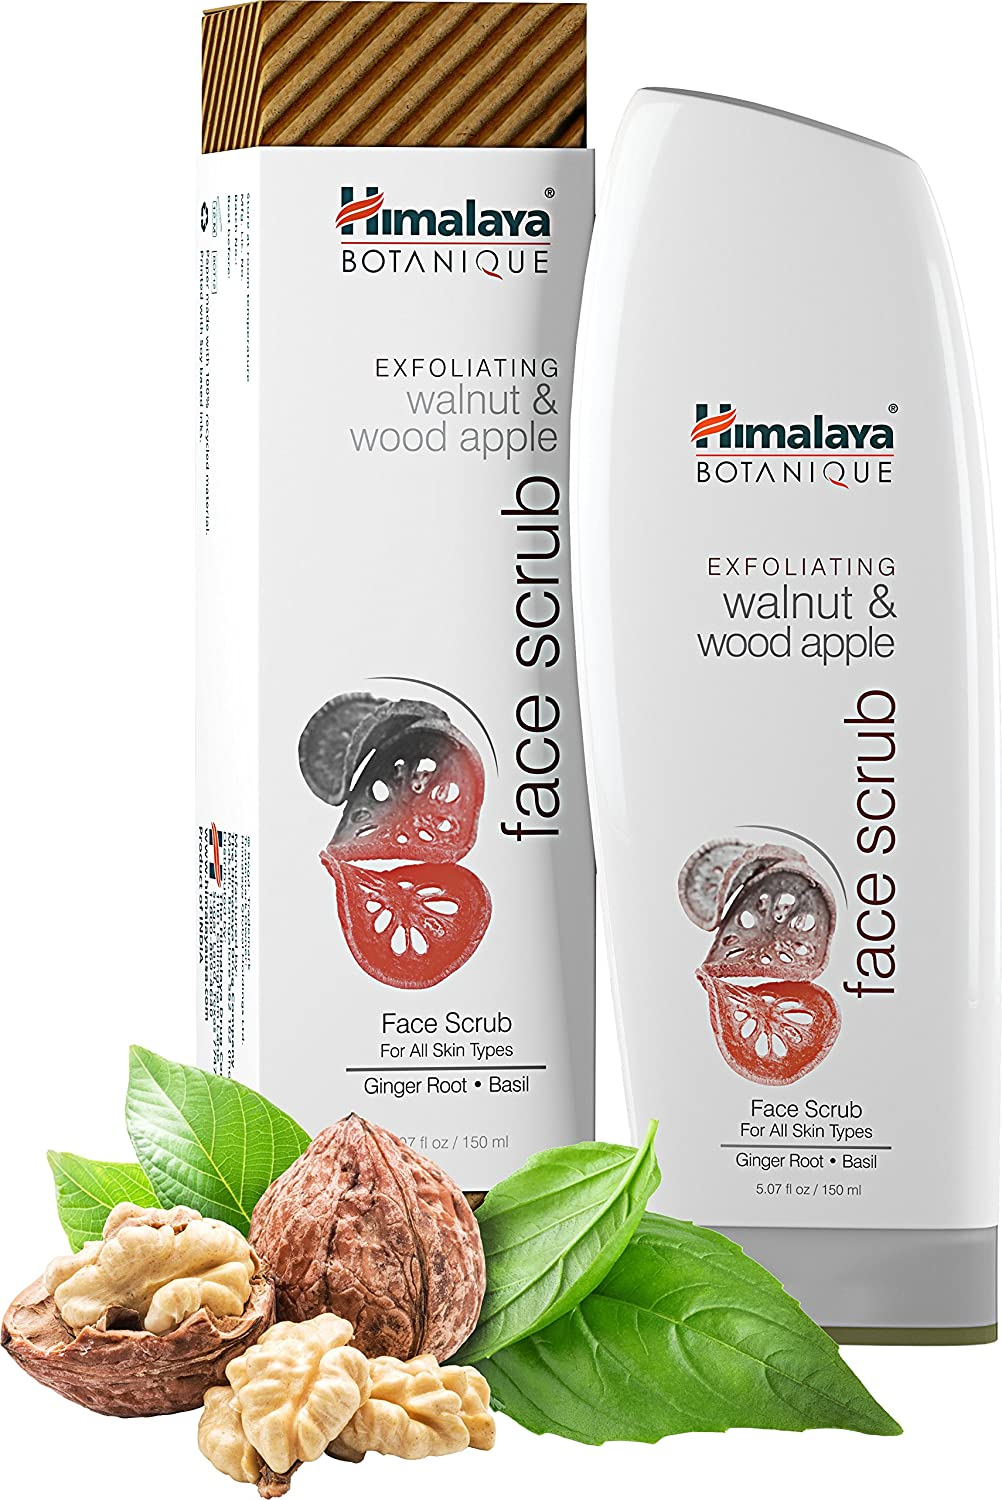 Himalaya Botanique Walnut & Wood Apple Exfoliating Natural Face Scrub, 5.07oz/150ml with Ginger Root and Basil for All Skin 200141